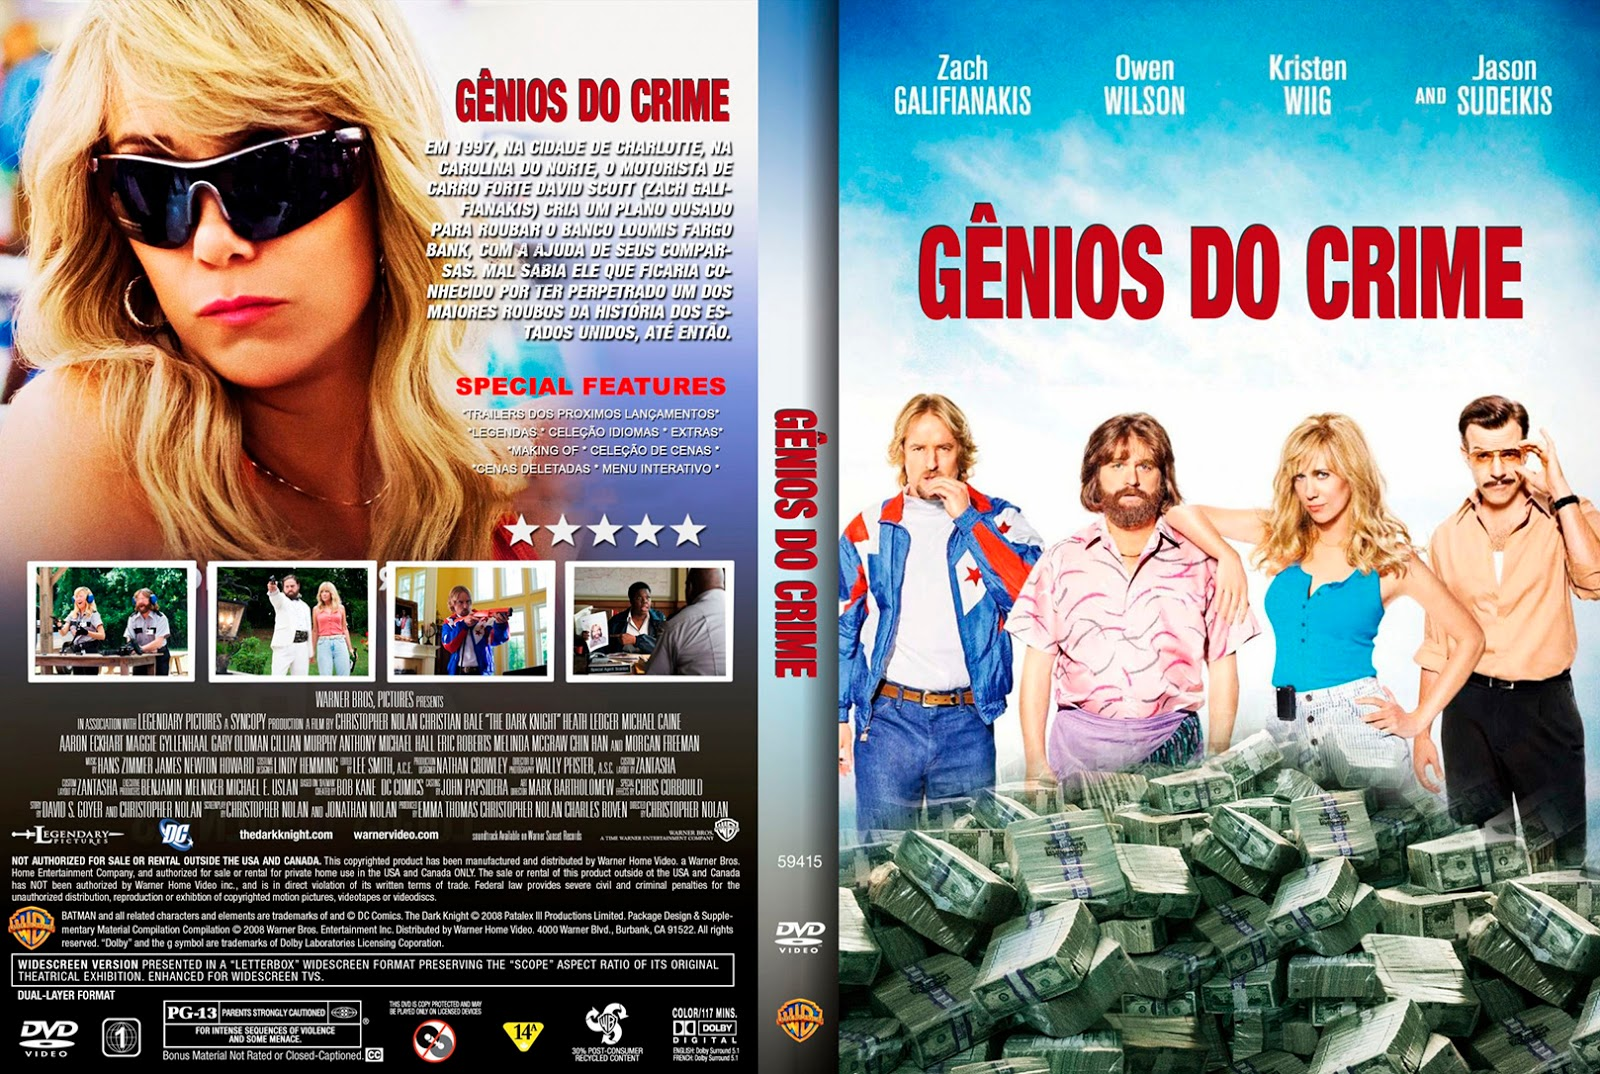 Gênios do Crime DVD-R Gênios do Crime DVD-R G 25C3 25AAnios do Crime DVD R XANDAODOWNLOAD